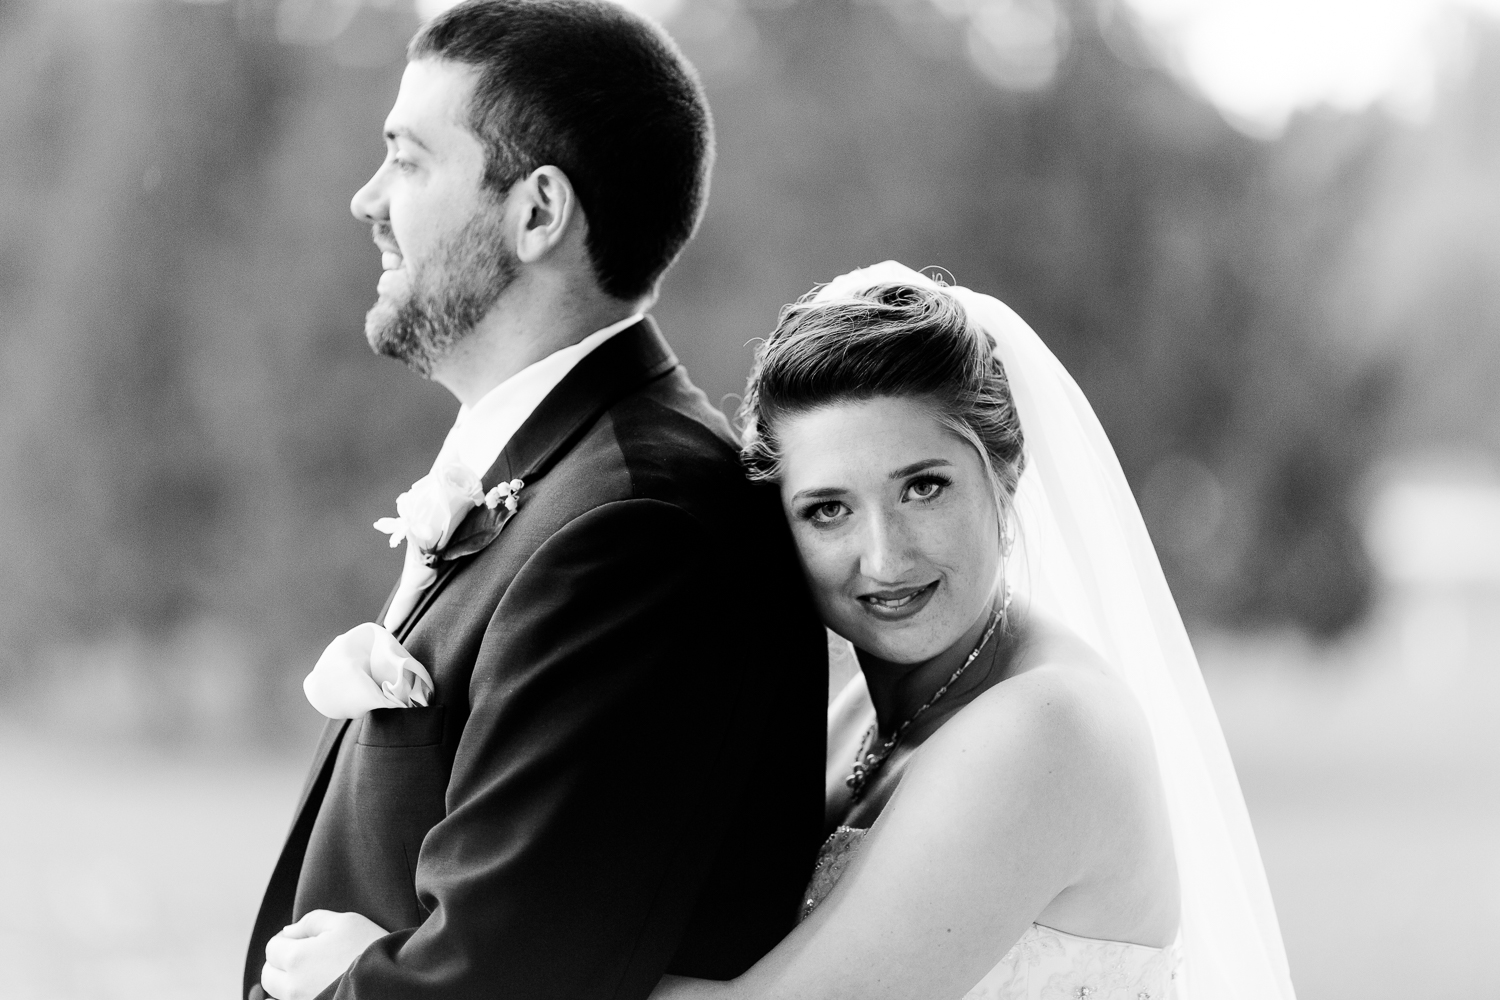 Black and white image of the bride and groom. The bride rests her head on the back of the grooms shoulder. She gazes into the camera while the groom looks off into the distance.